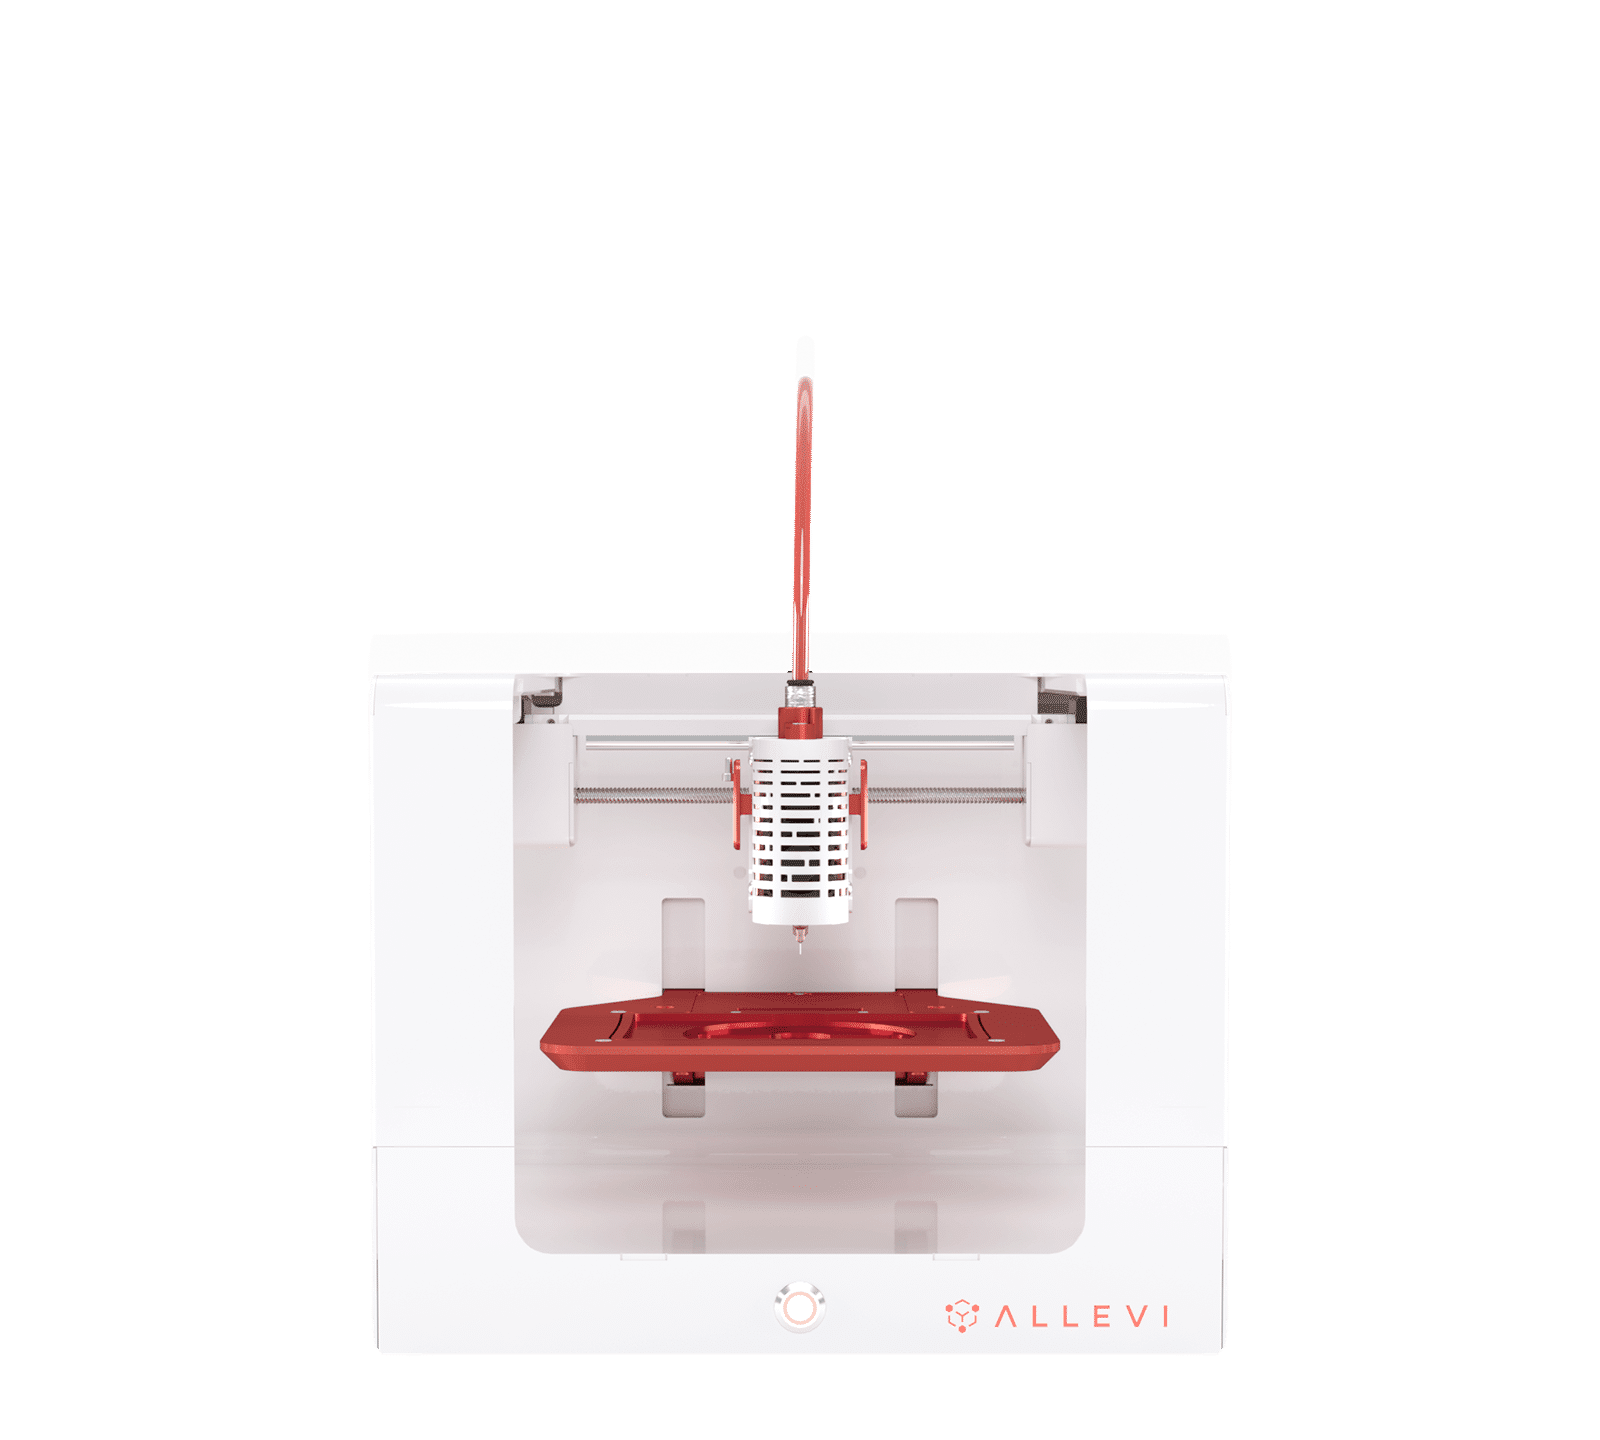 Allevi 1 bioprinter